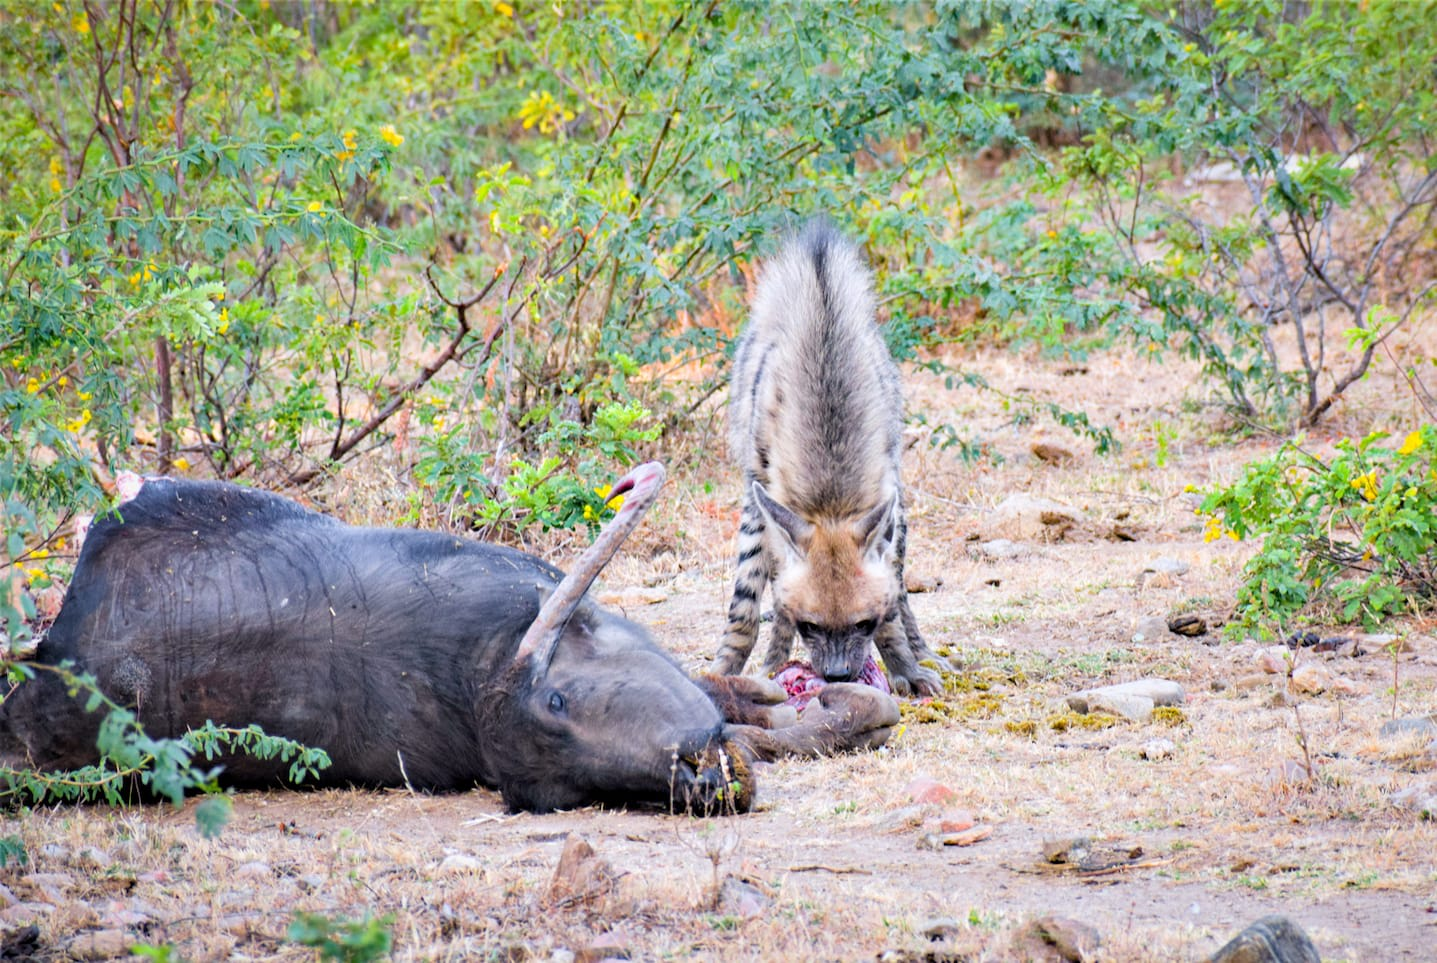 """""""A leopard was the first to arrive at this buffet, followed by this female striped hyena (Hyaena hyaena). After the hyena had her fill she left and came back to the carcass three or four times, taking with her a morsel each time. She was probably transporting food to her cubs,"""" says Bishnoi, who was surprised to see the scavenger on the carcass well into the morning.  Primarily nocturnal, the striped hyena normally leaves its den only under the cover of darkness and returns to it before sunrise. Kumbhalgarh is estimated to have around 141 hyenas."""